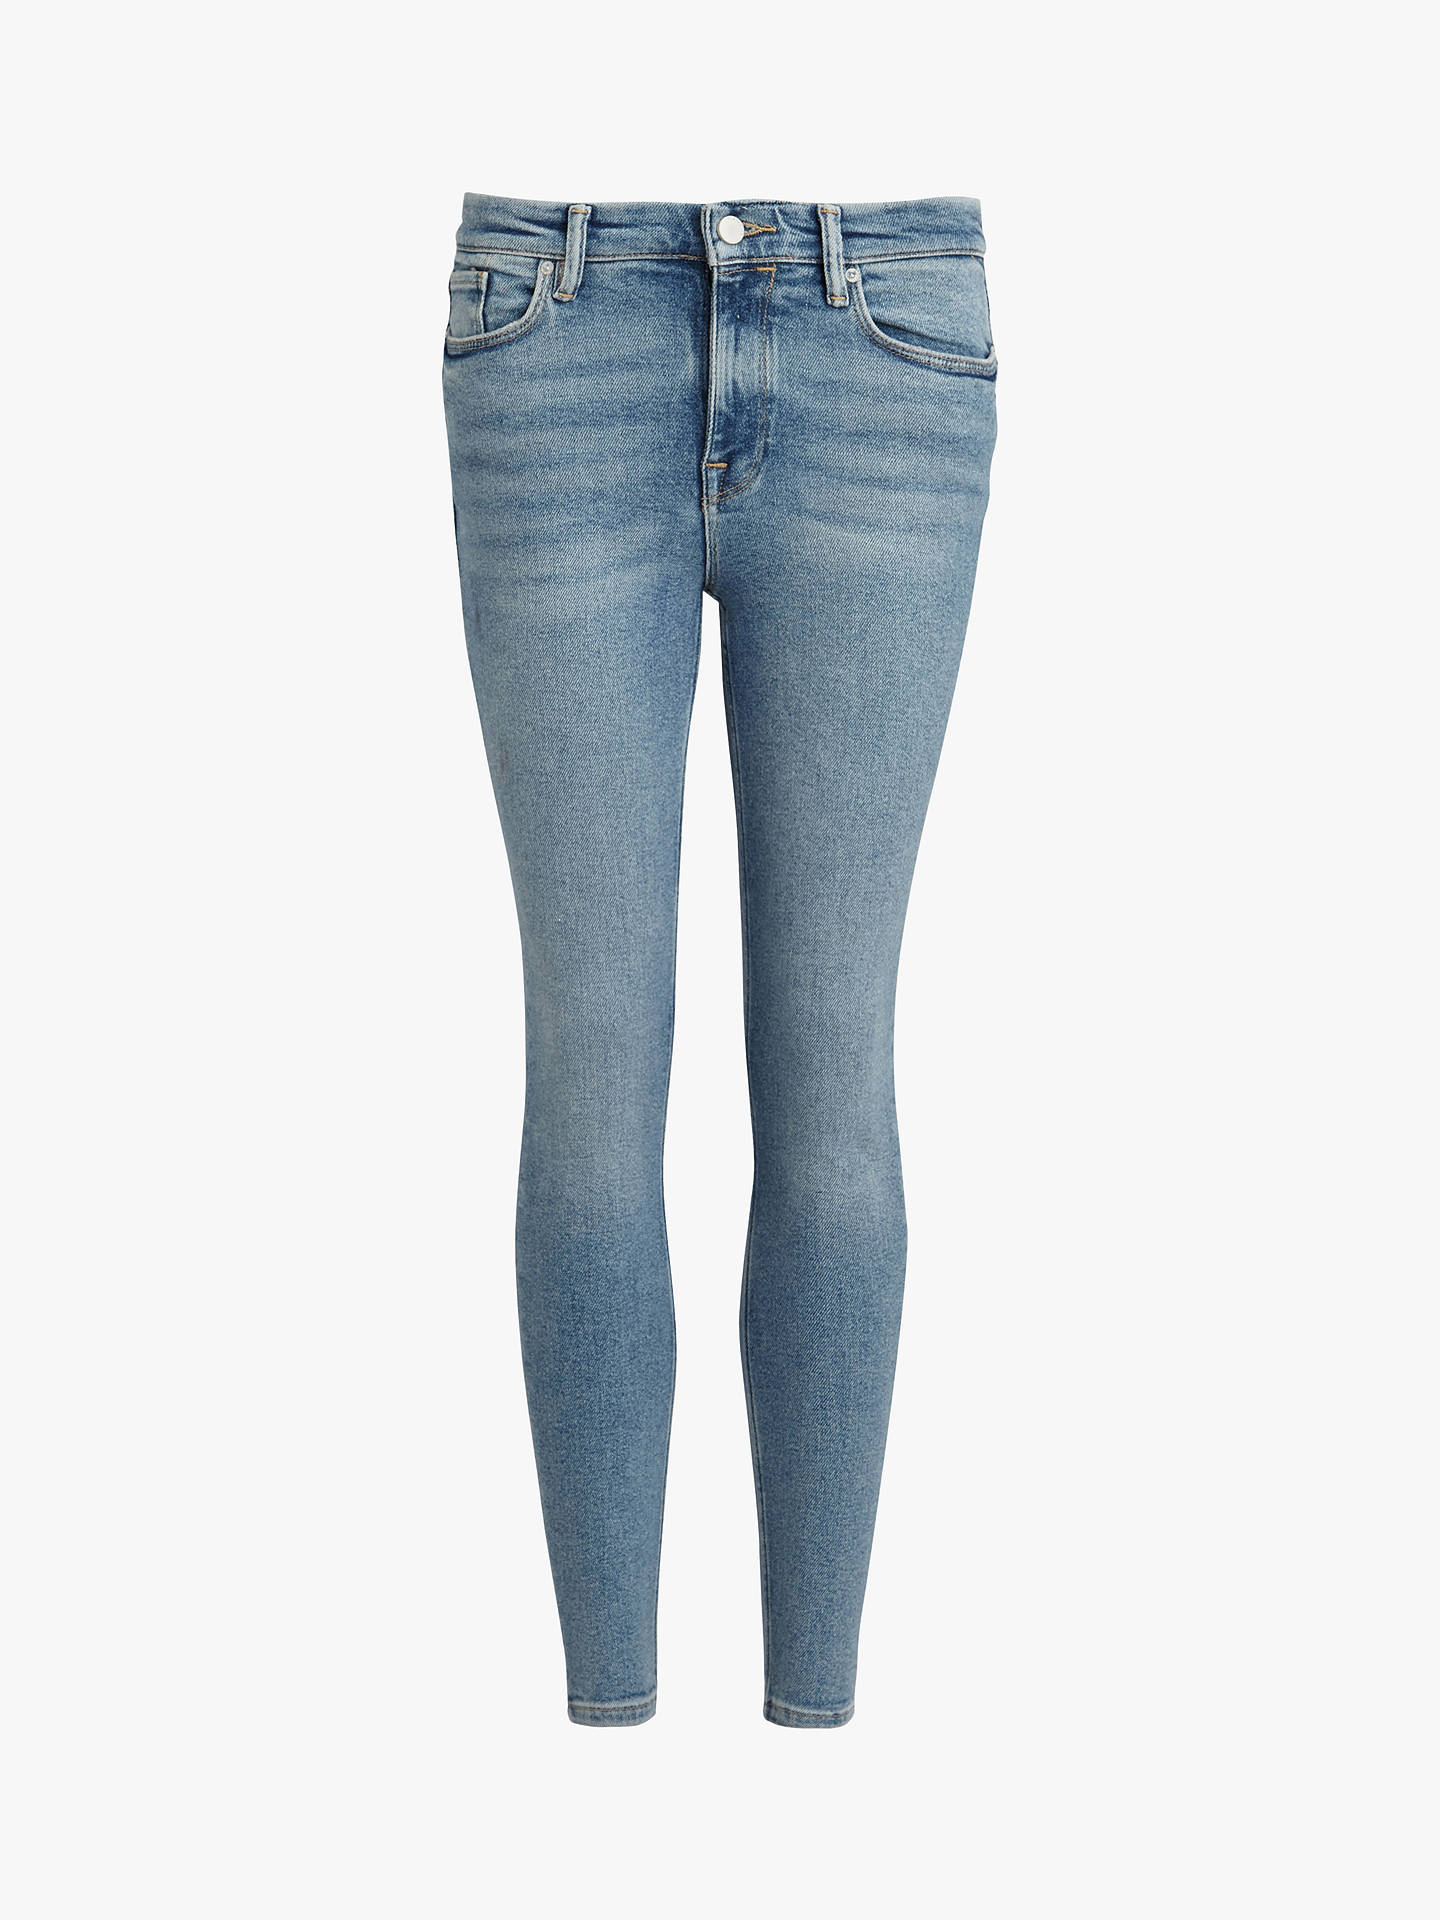 Buy AllSaints Grace Skinny Jeans, Indigo Blue, 25R Online at johnlewis.com